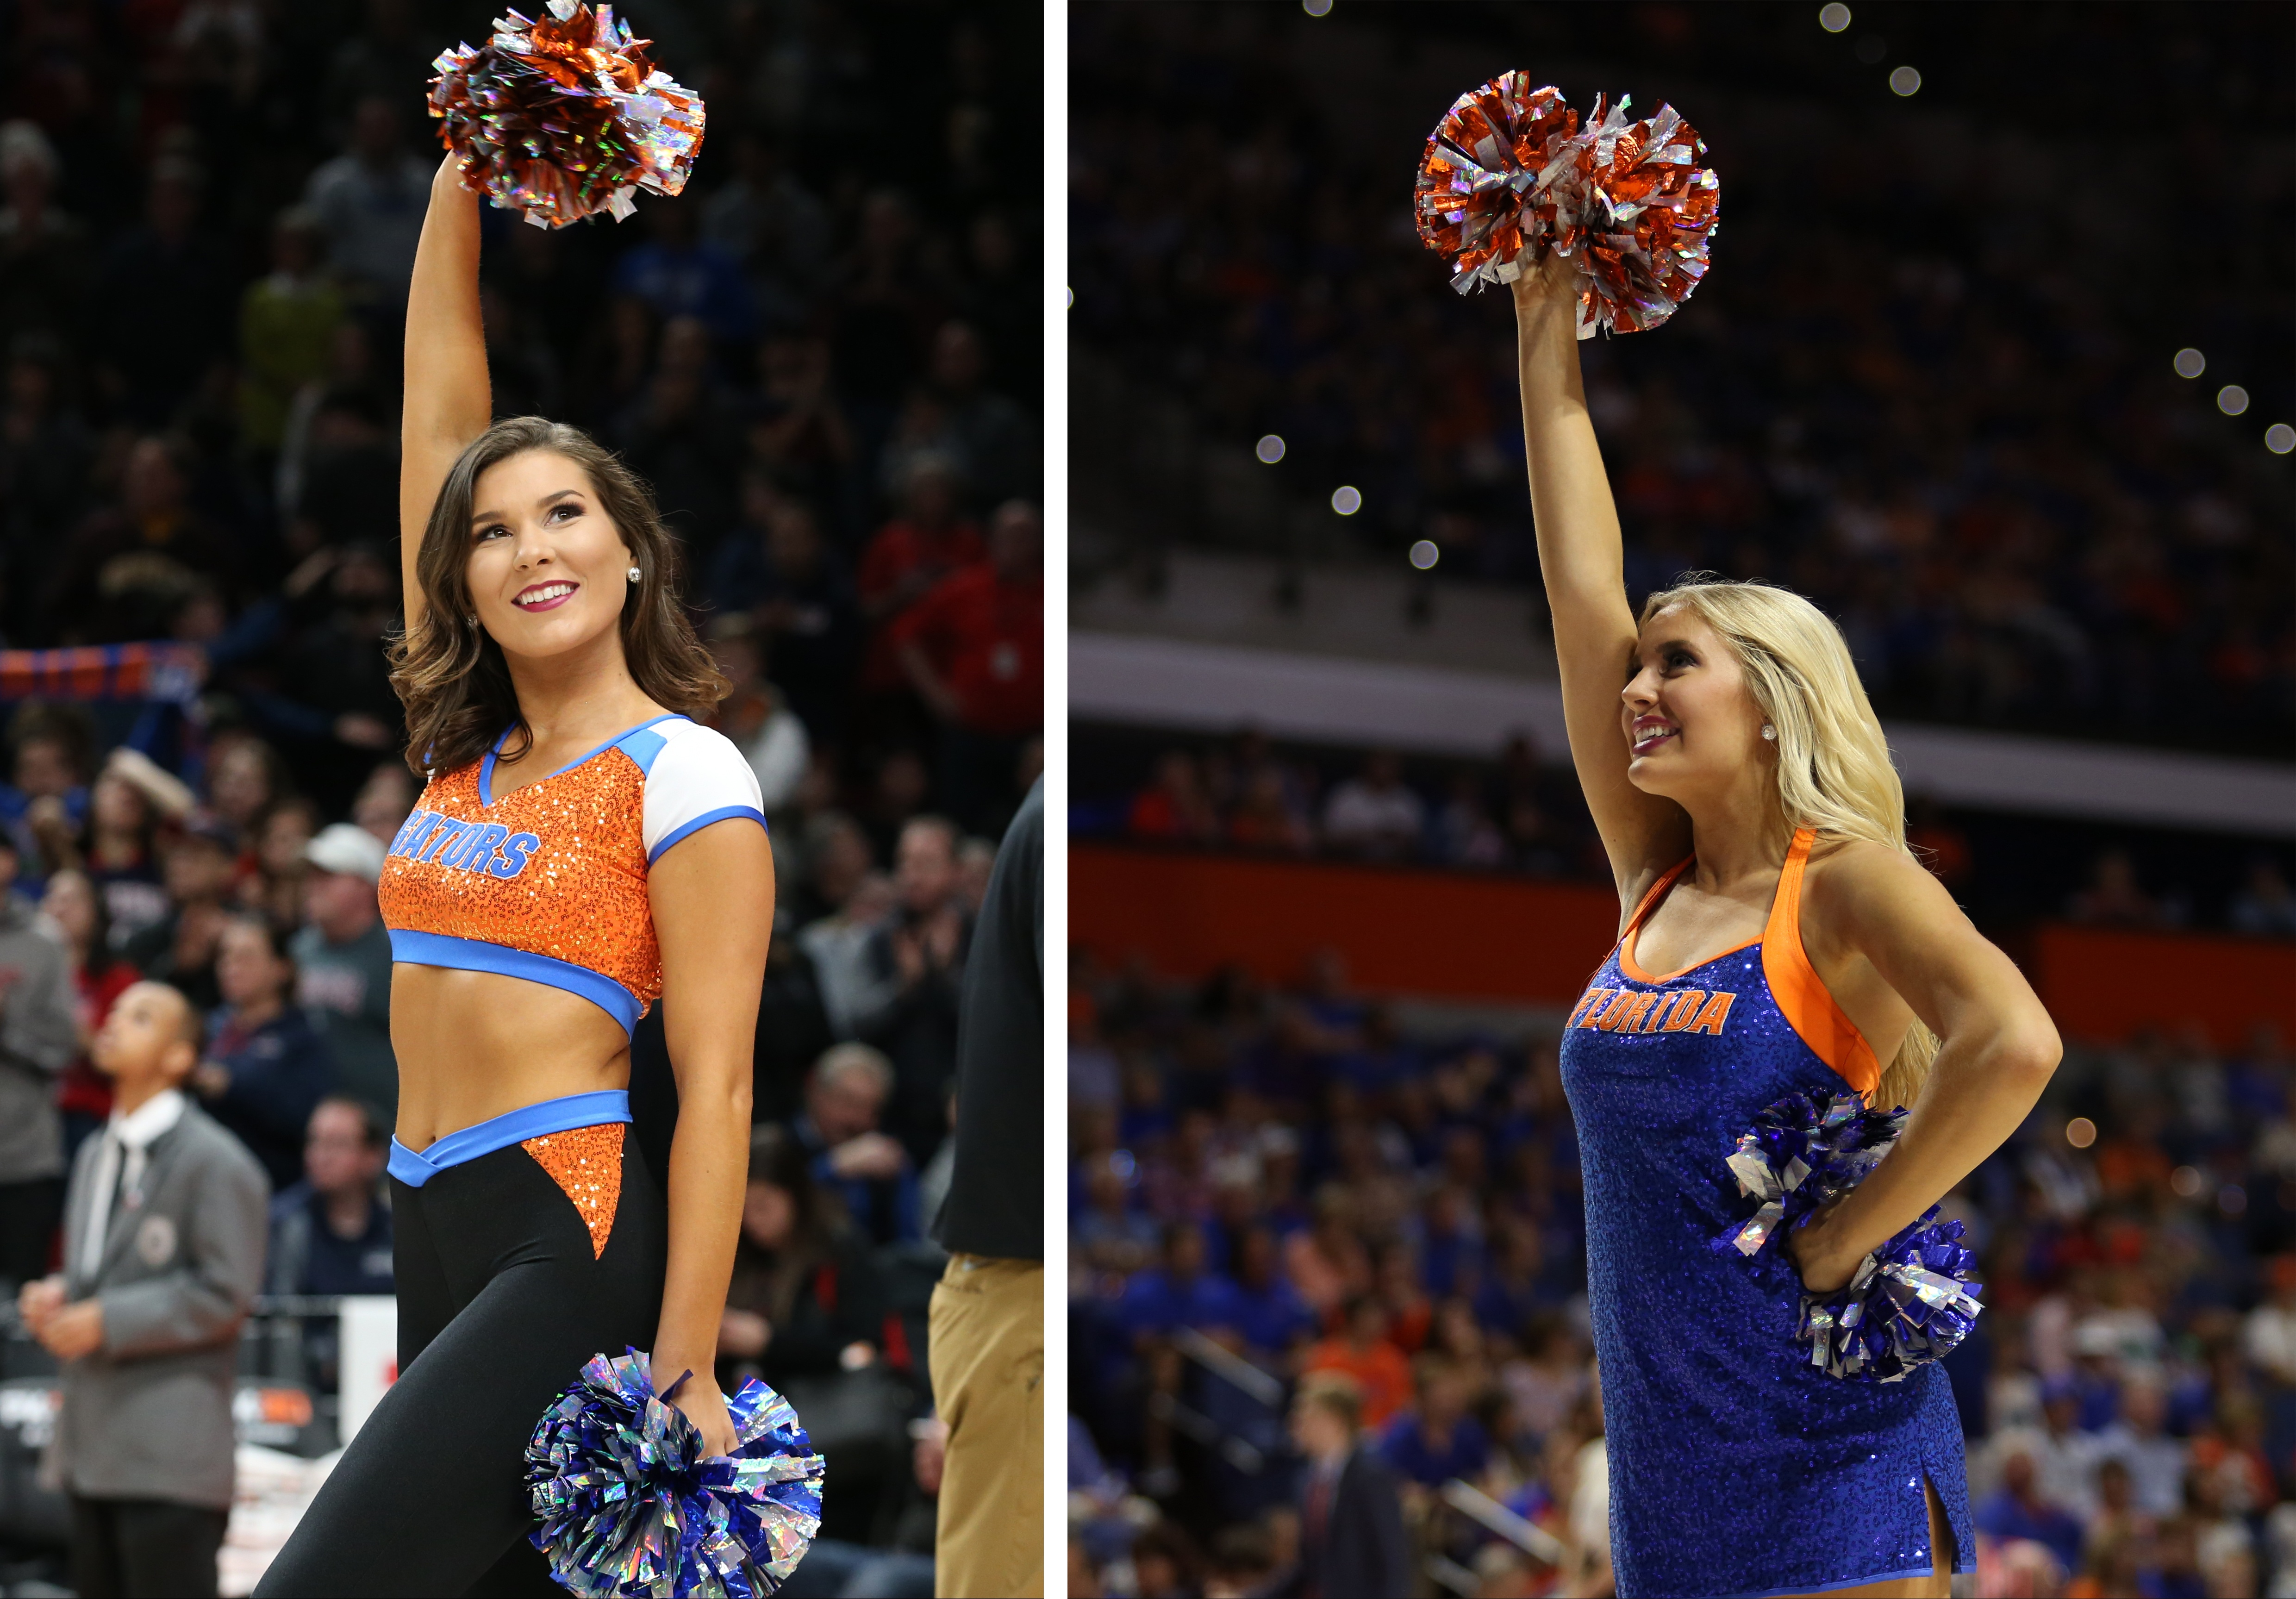 florida gators dazzlers uniforms